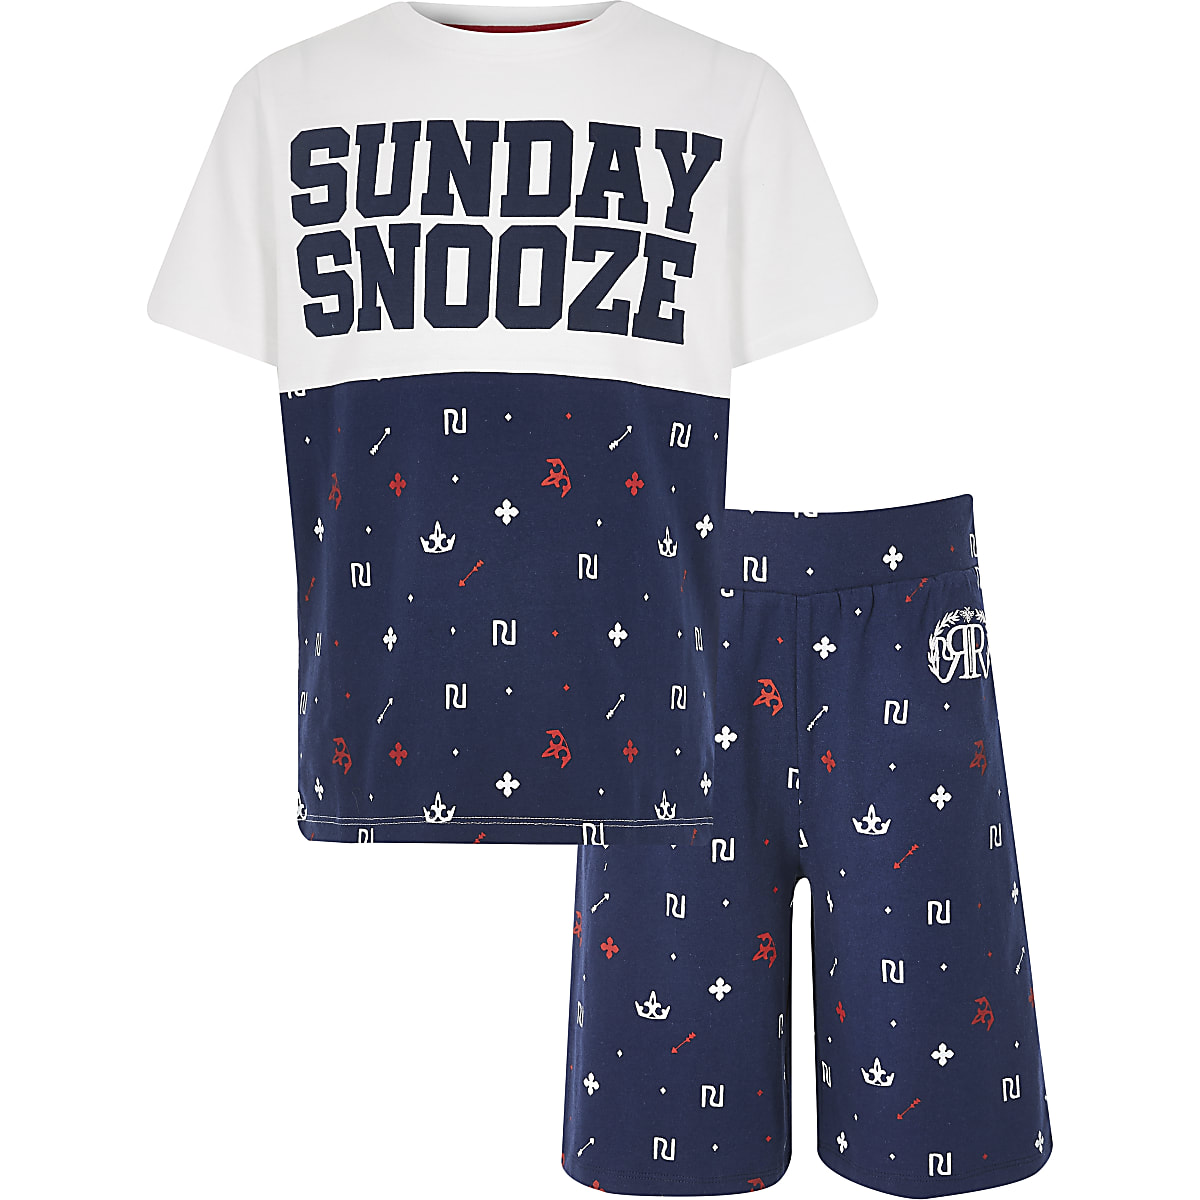 Boys navy RI print pyjama set